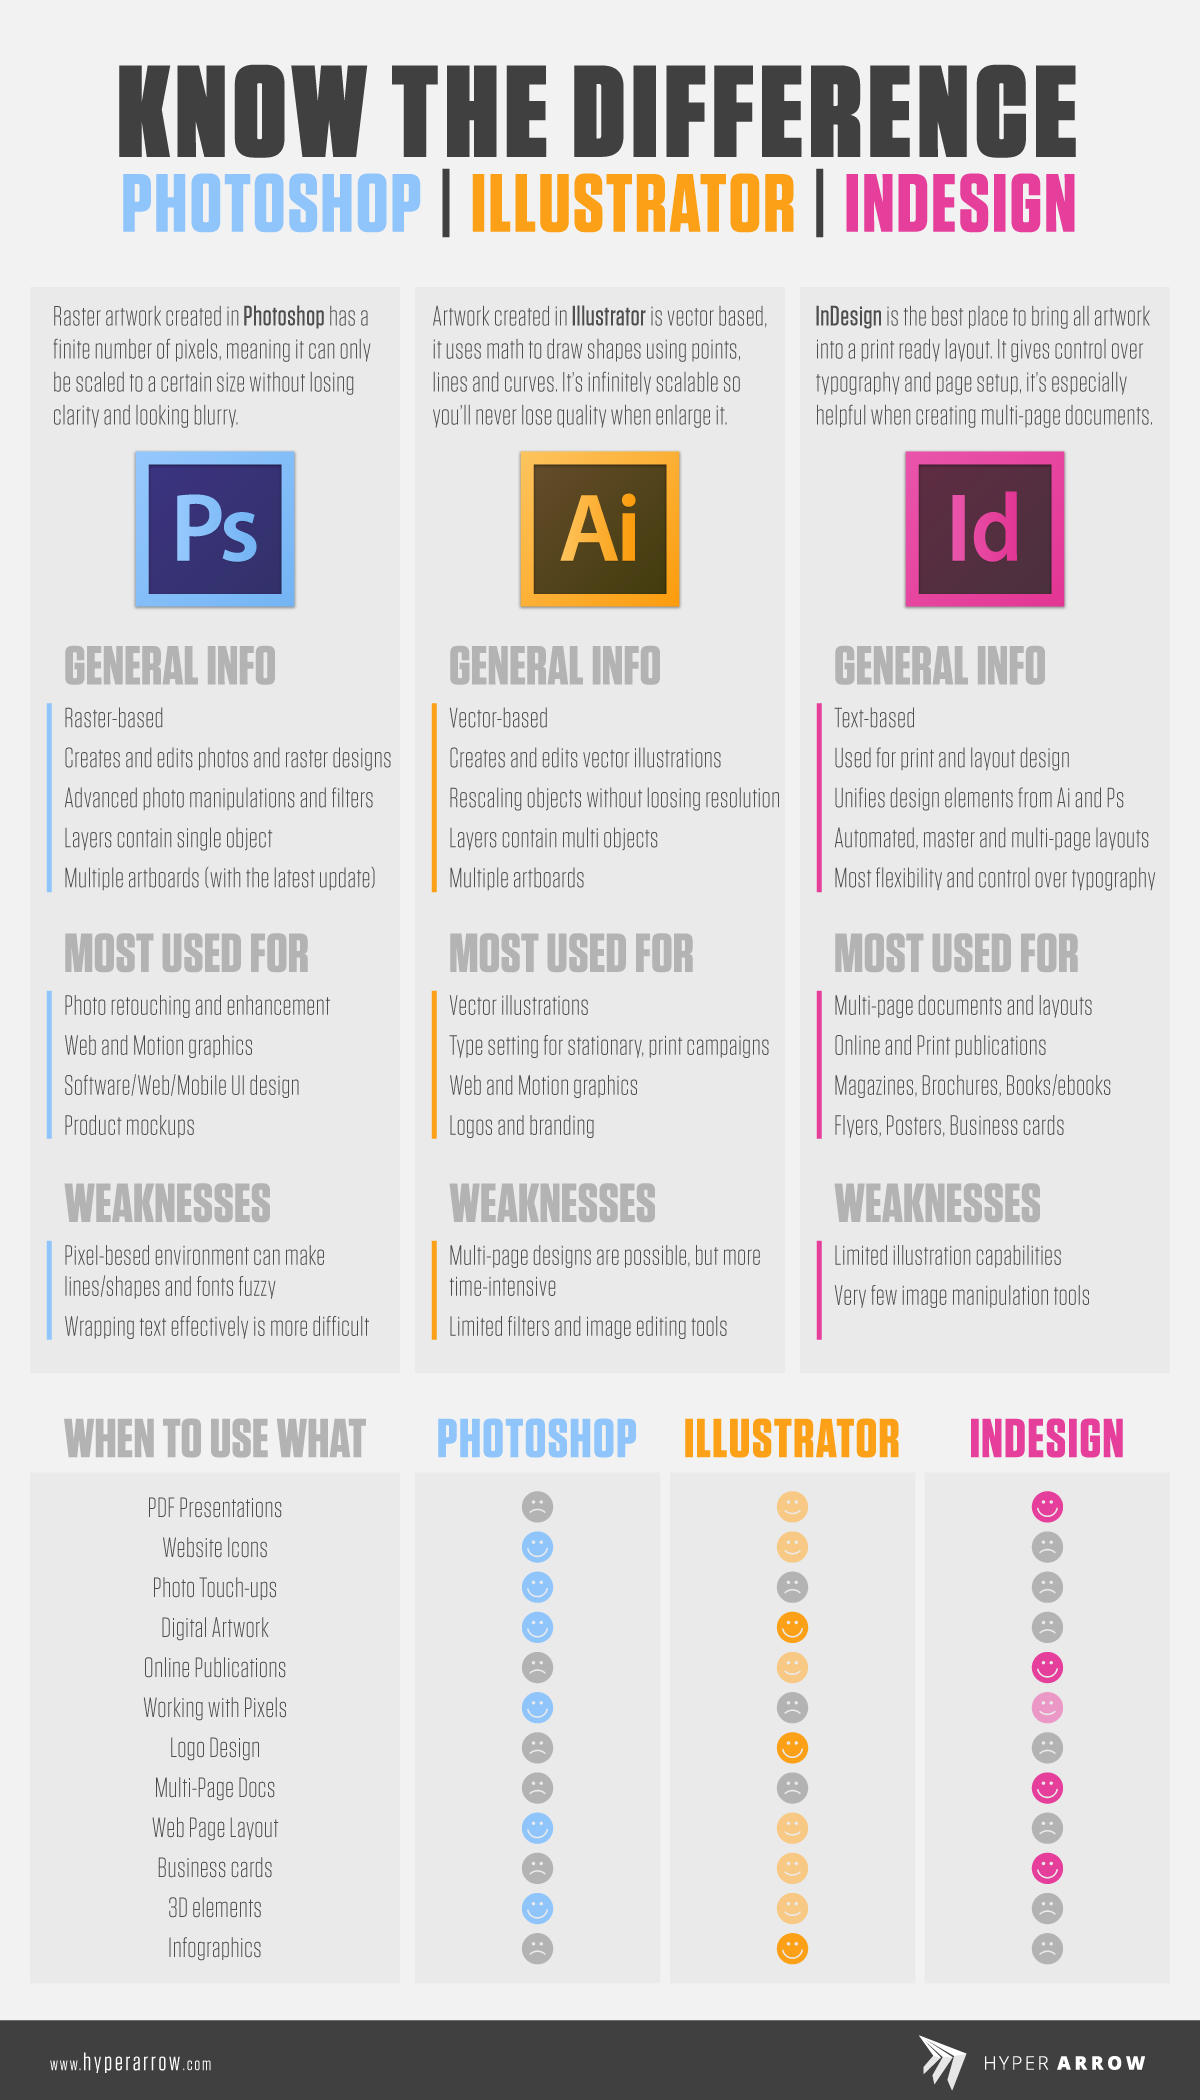 Know The Difference Between Photoshop Illustrator And Indesign Raster Artwork Creat Graphic Design Lessons Learning Graphic Design Graphic Design Tools